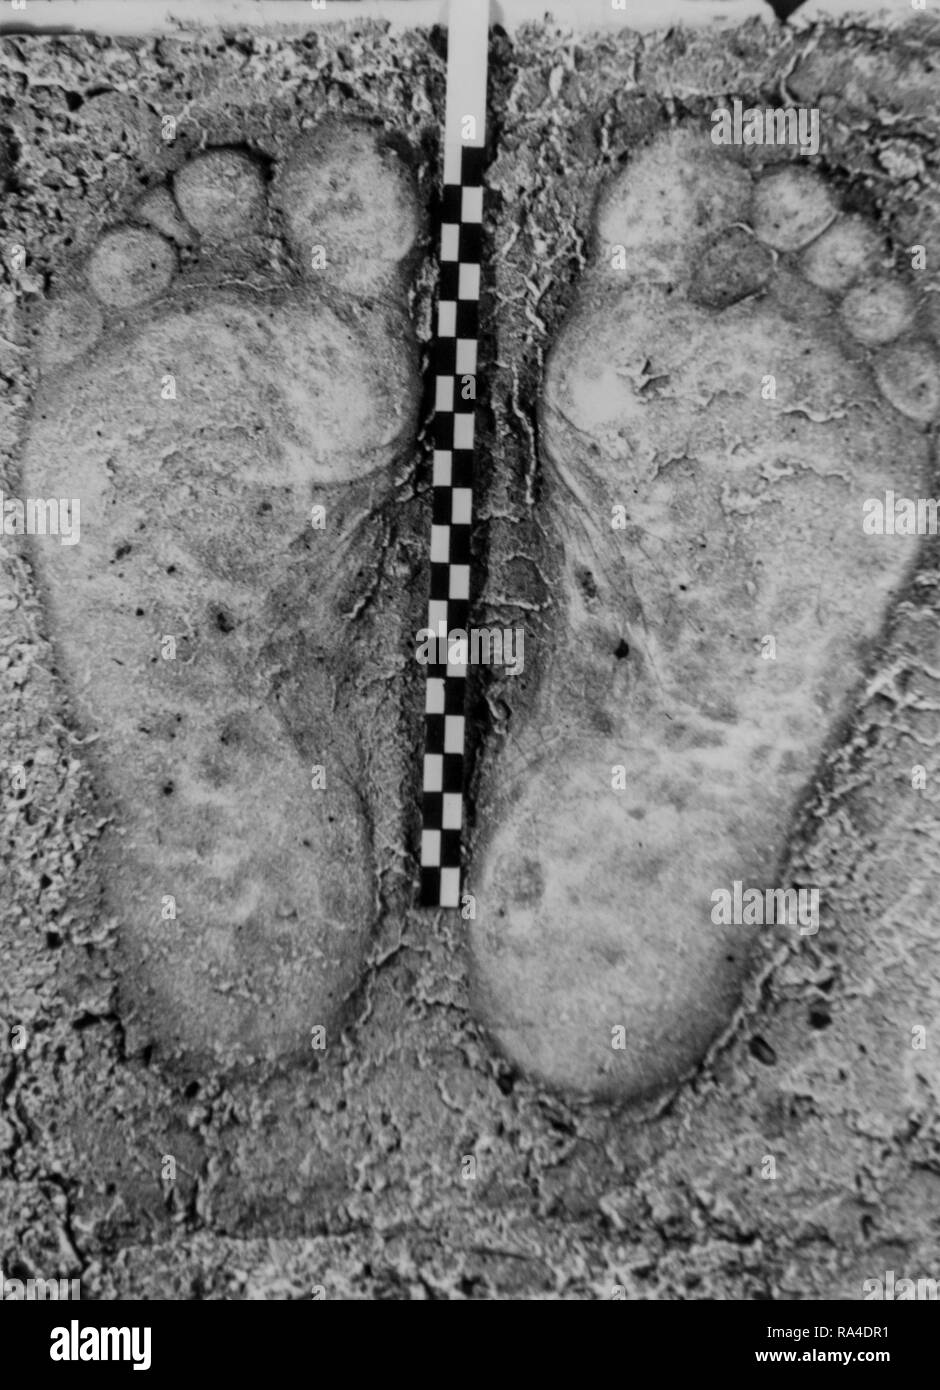 Old archival black and white phtoto of plaster cast of footprints from criminal's bare feet taken at crime scene for criminal investigation - Stock Image